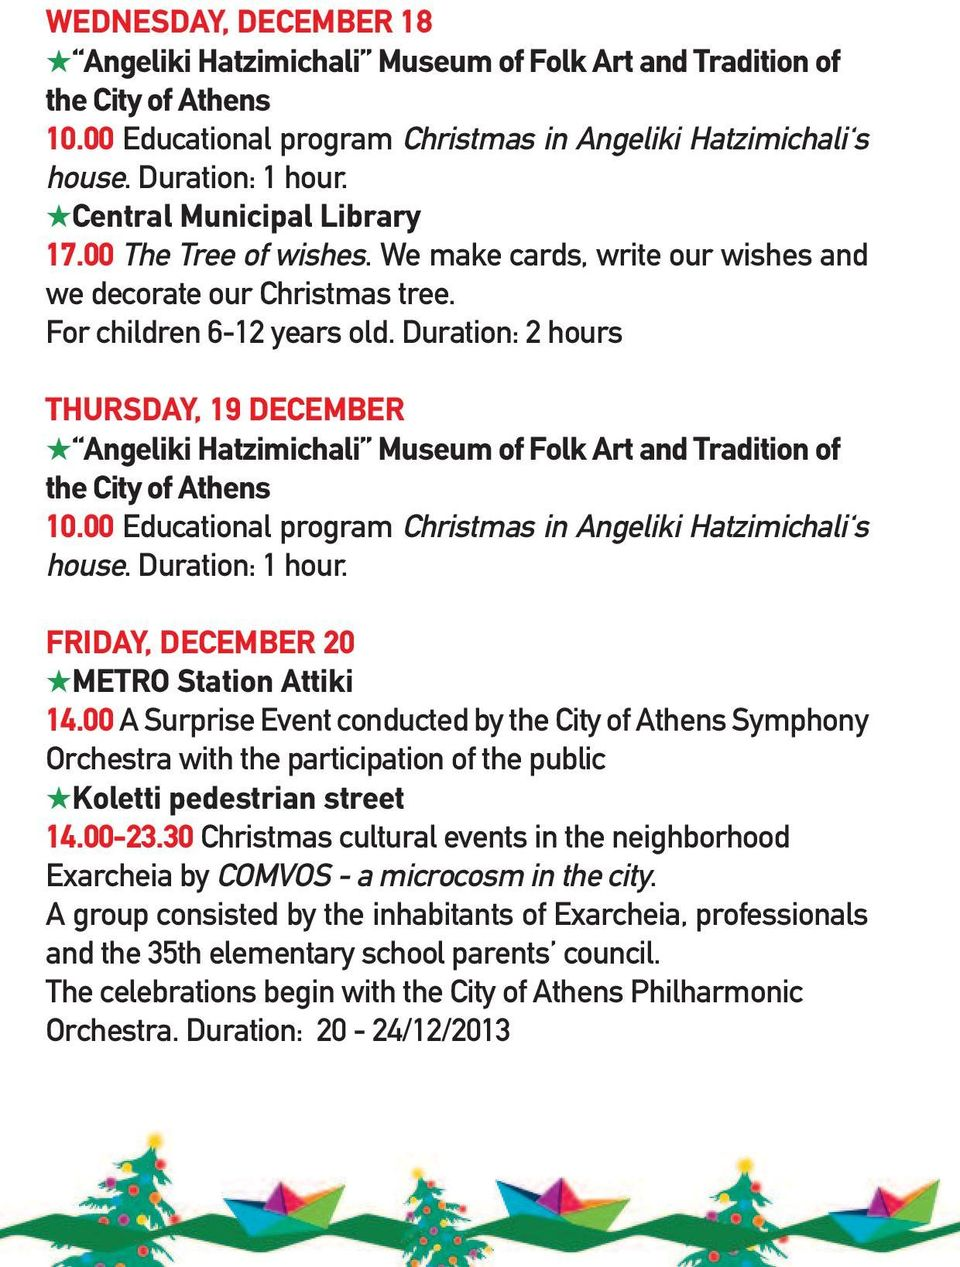 Duration: 2 hours THuRSdAY, 19 december Angeliki Hatzimichali Museum of Folk Art and Tradition of the City of Athens 10.00 Educational program Christmas in Angeliki Hatzimichali s house.